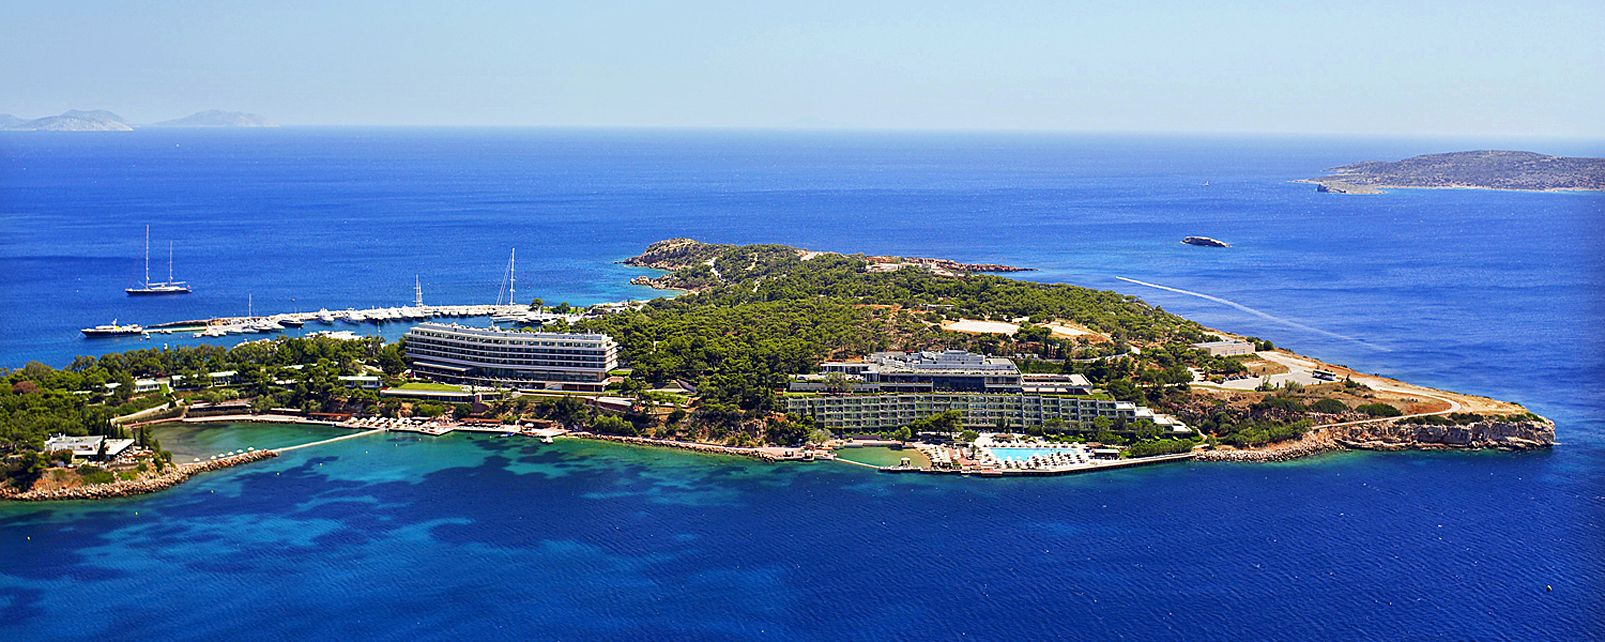 Hotel Arion Resort and Spa